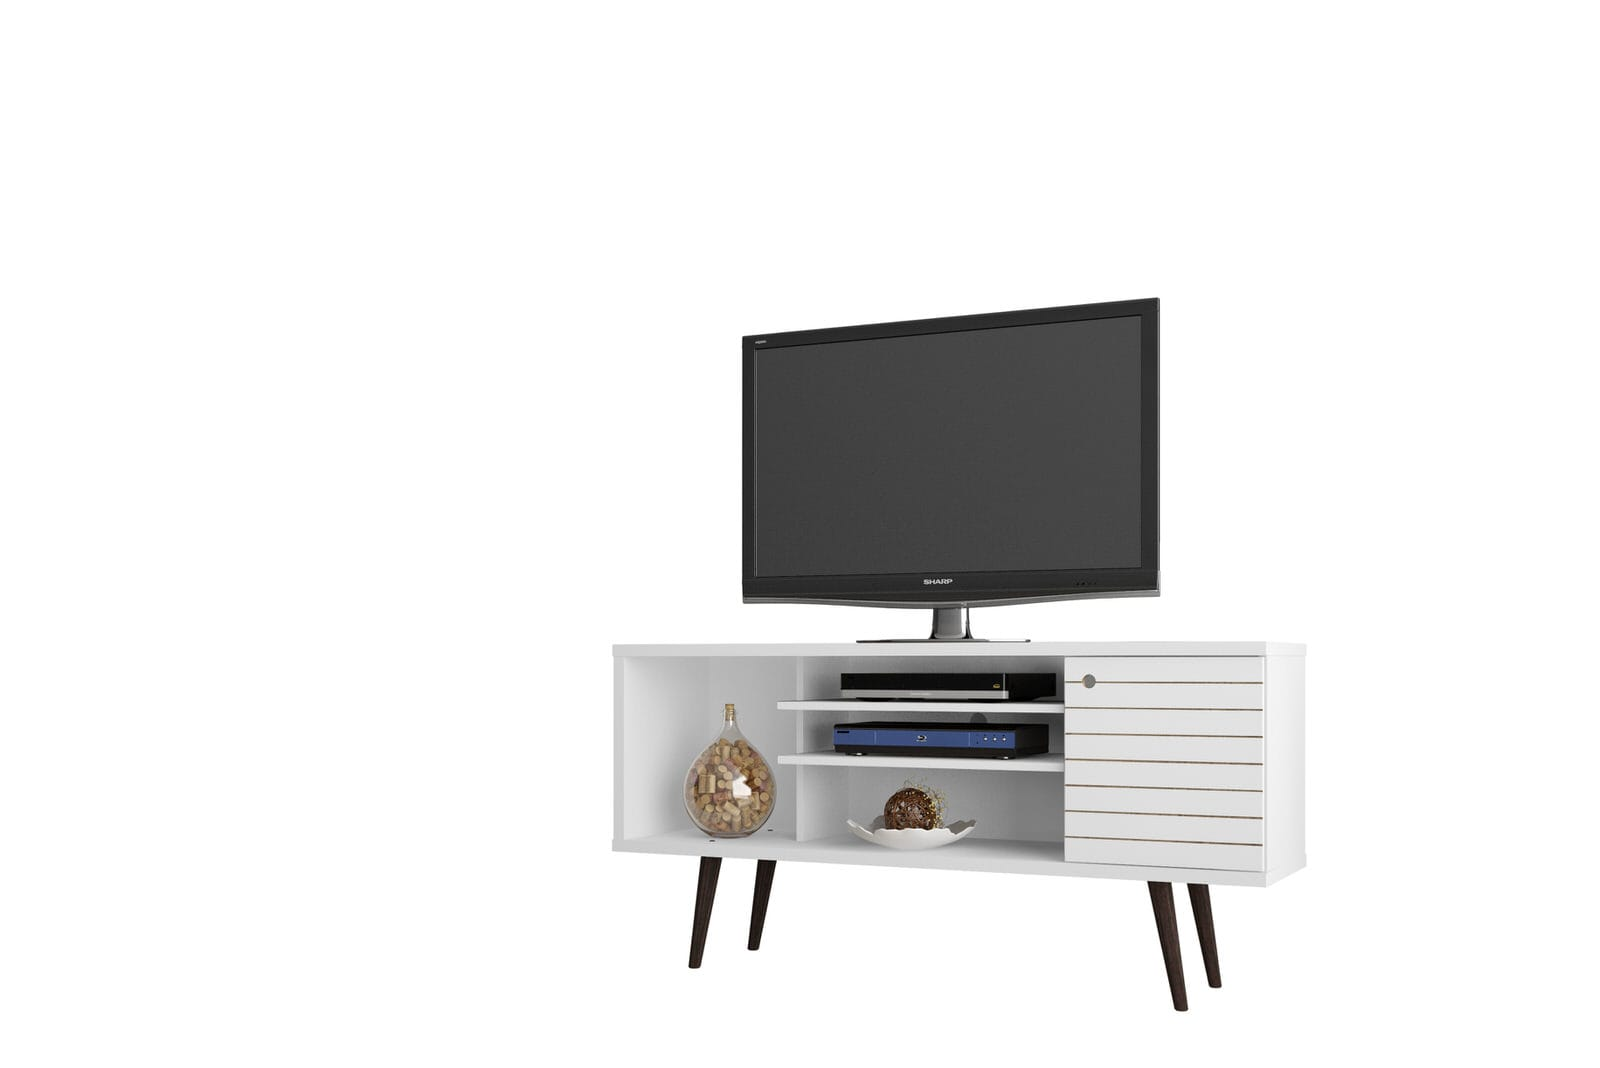 Modern Tv Liberty White 53 14 Inch Mid Century Modern Tv Stand W 5 Shelves 1 Door Solid Wood Legs By Manhattan Comfort